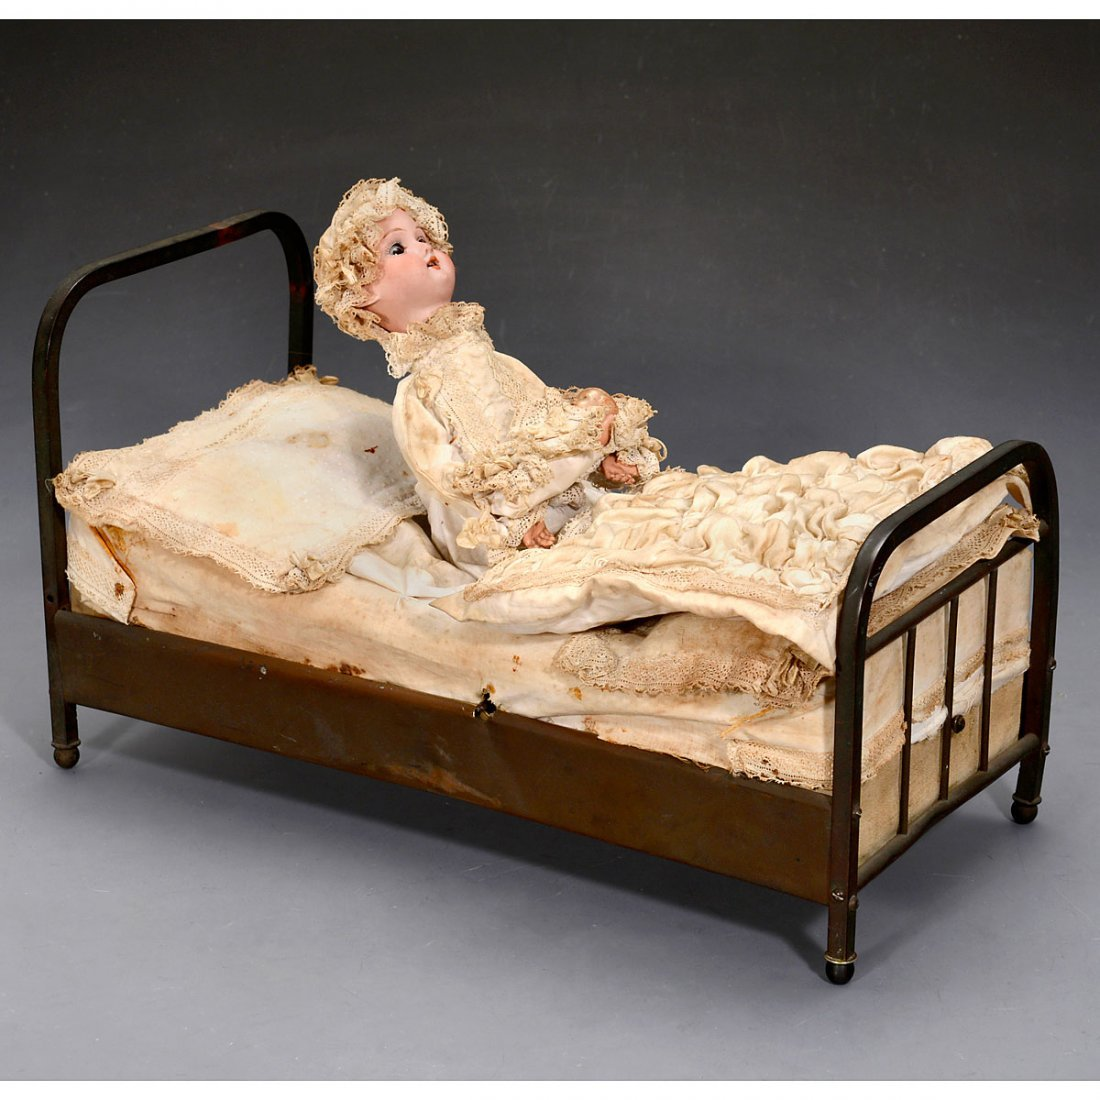 Sleeping Mother and Baby Musical Automaton, c. 1910